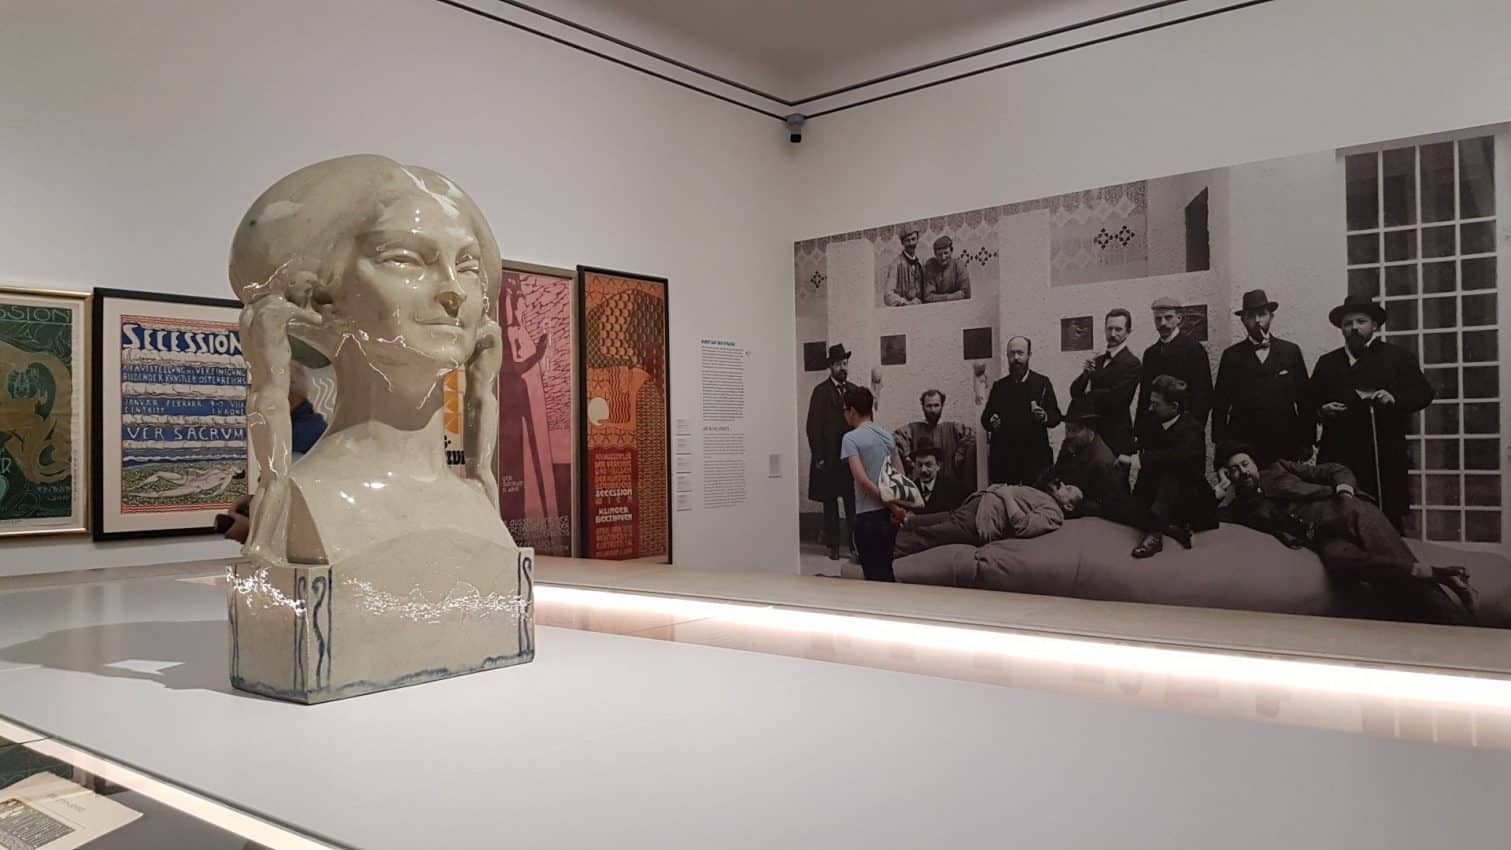 The exhibition of The Secession Movement in the Leopold Museum in Vienna. Photo: Art with me! e.U., 2019